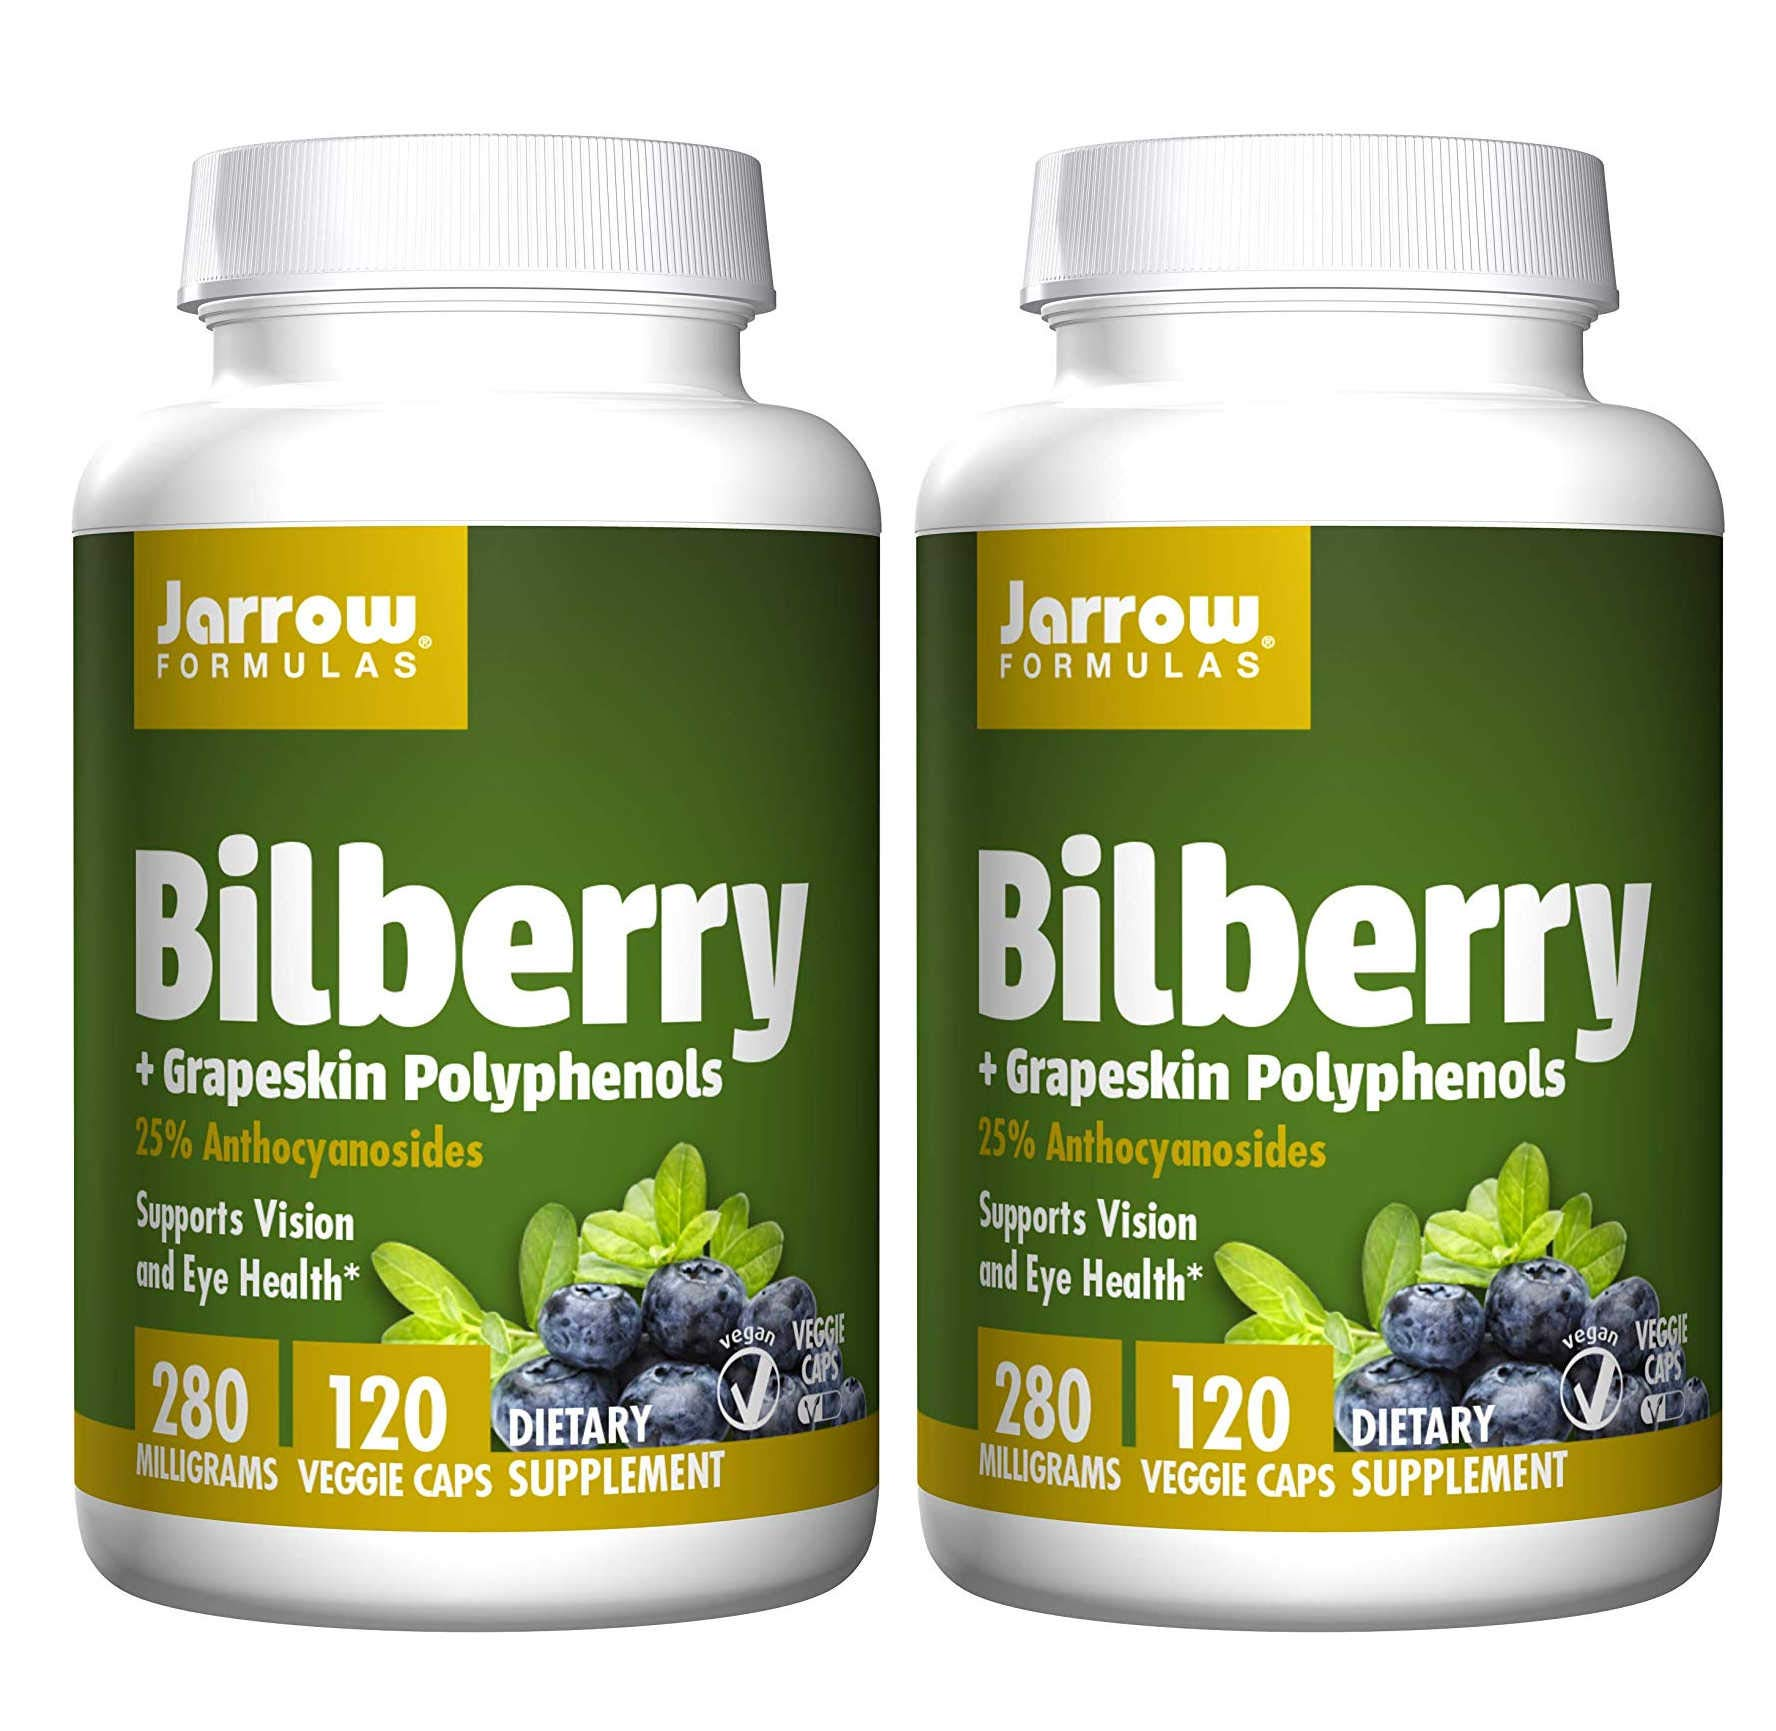 Jarrow Formulas Bilberry + Grapeskin Polyphenols 25% Anthocyanosides Supports Vision and Eye Health 280 Milligrams (120 Veggie Caps) Pack of 2